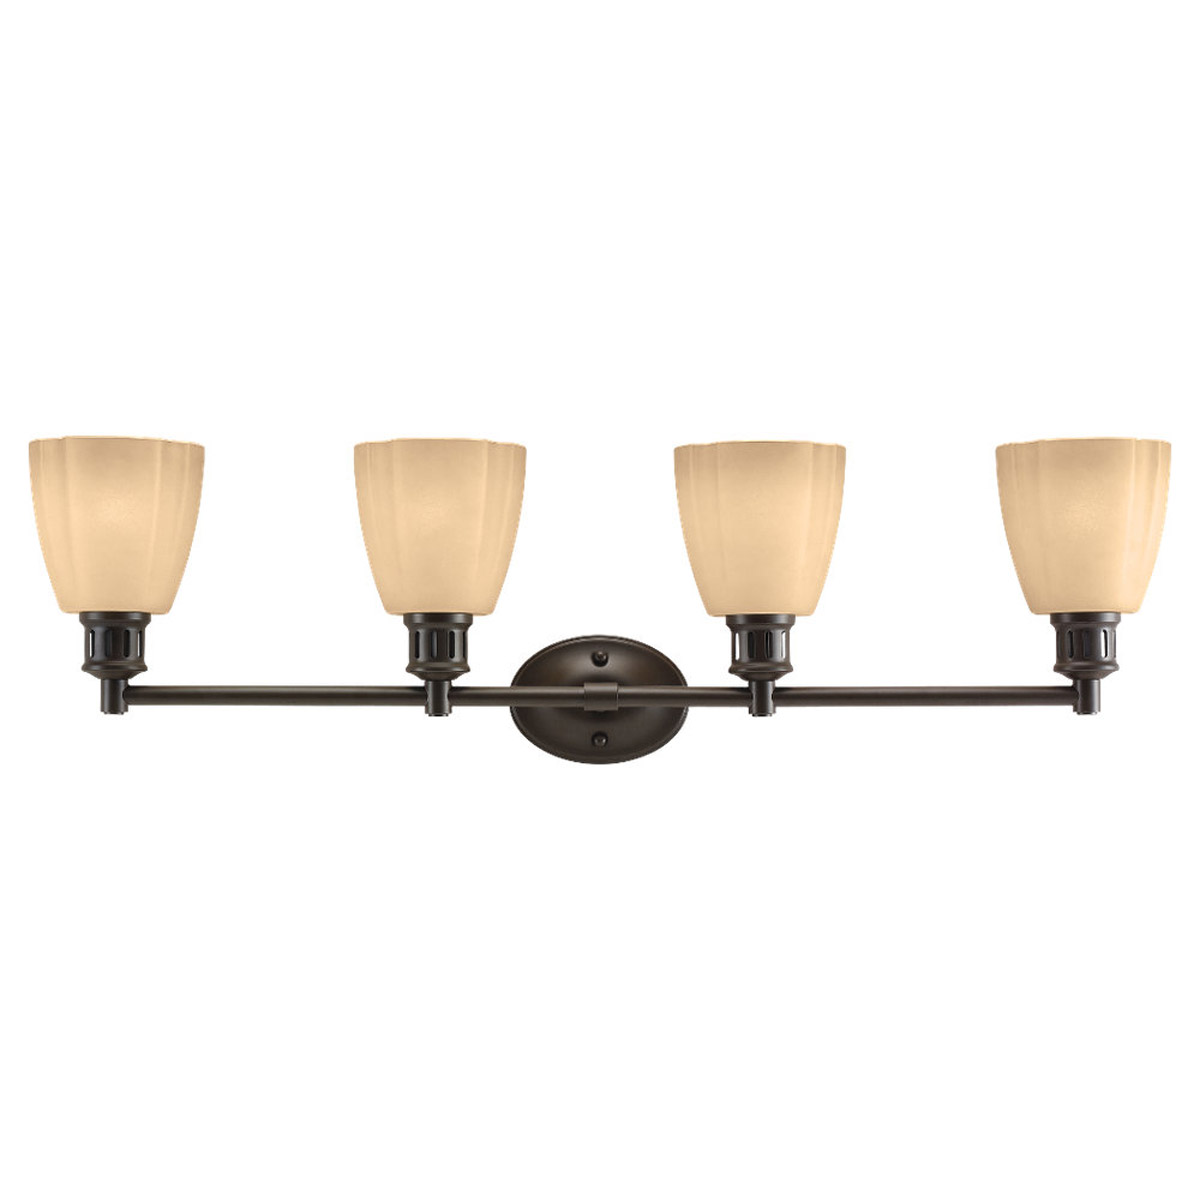 Sea Gull Lighting Century 4 Light Bath Vanity in Heirloom Bronze 44476-782 photo